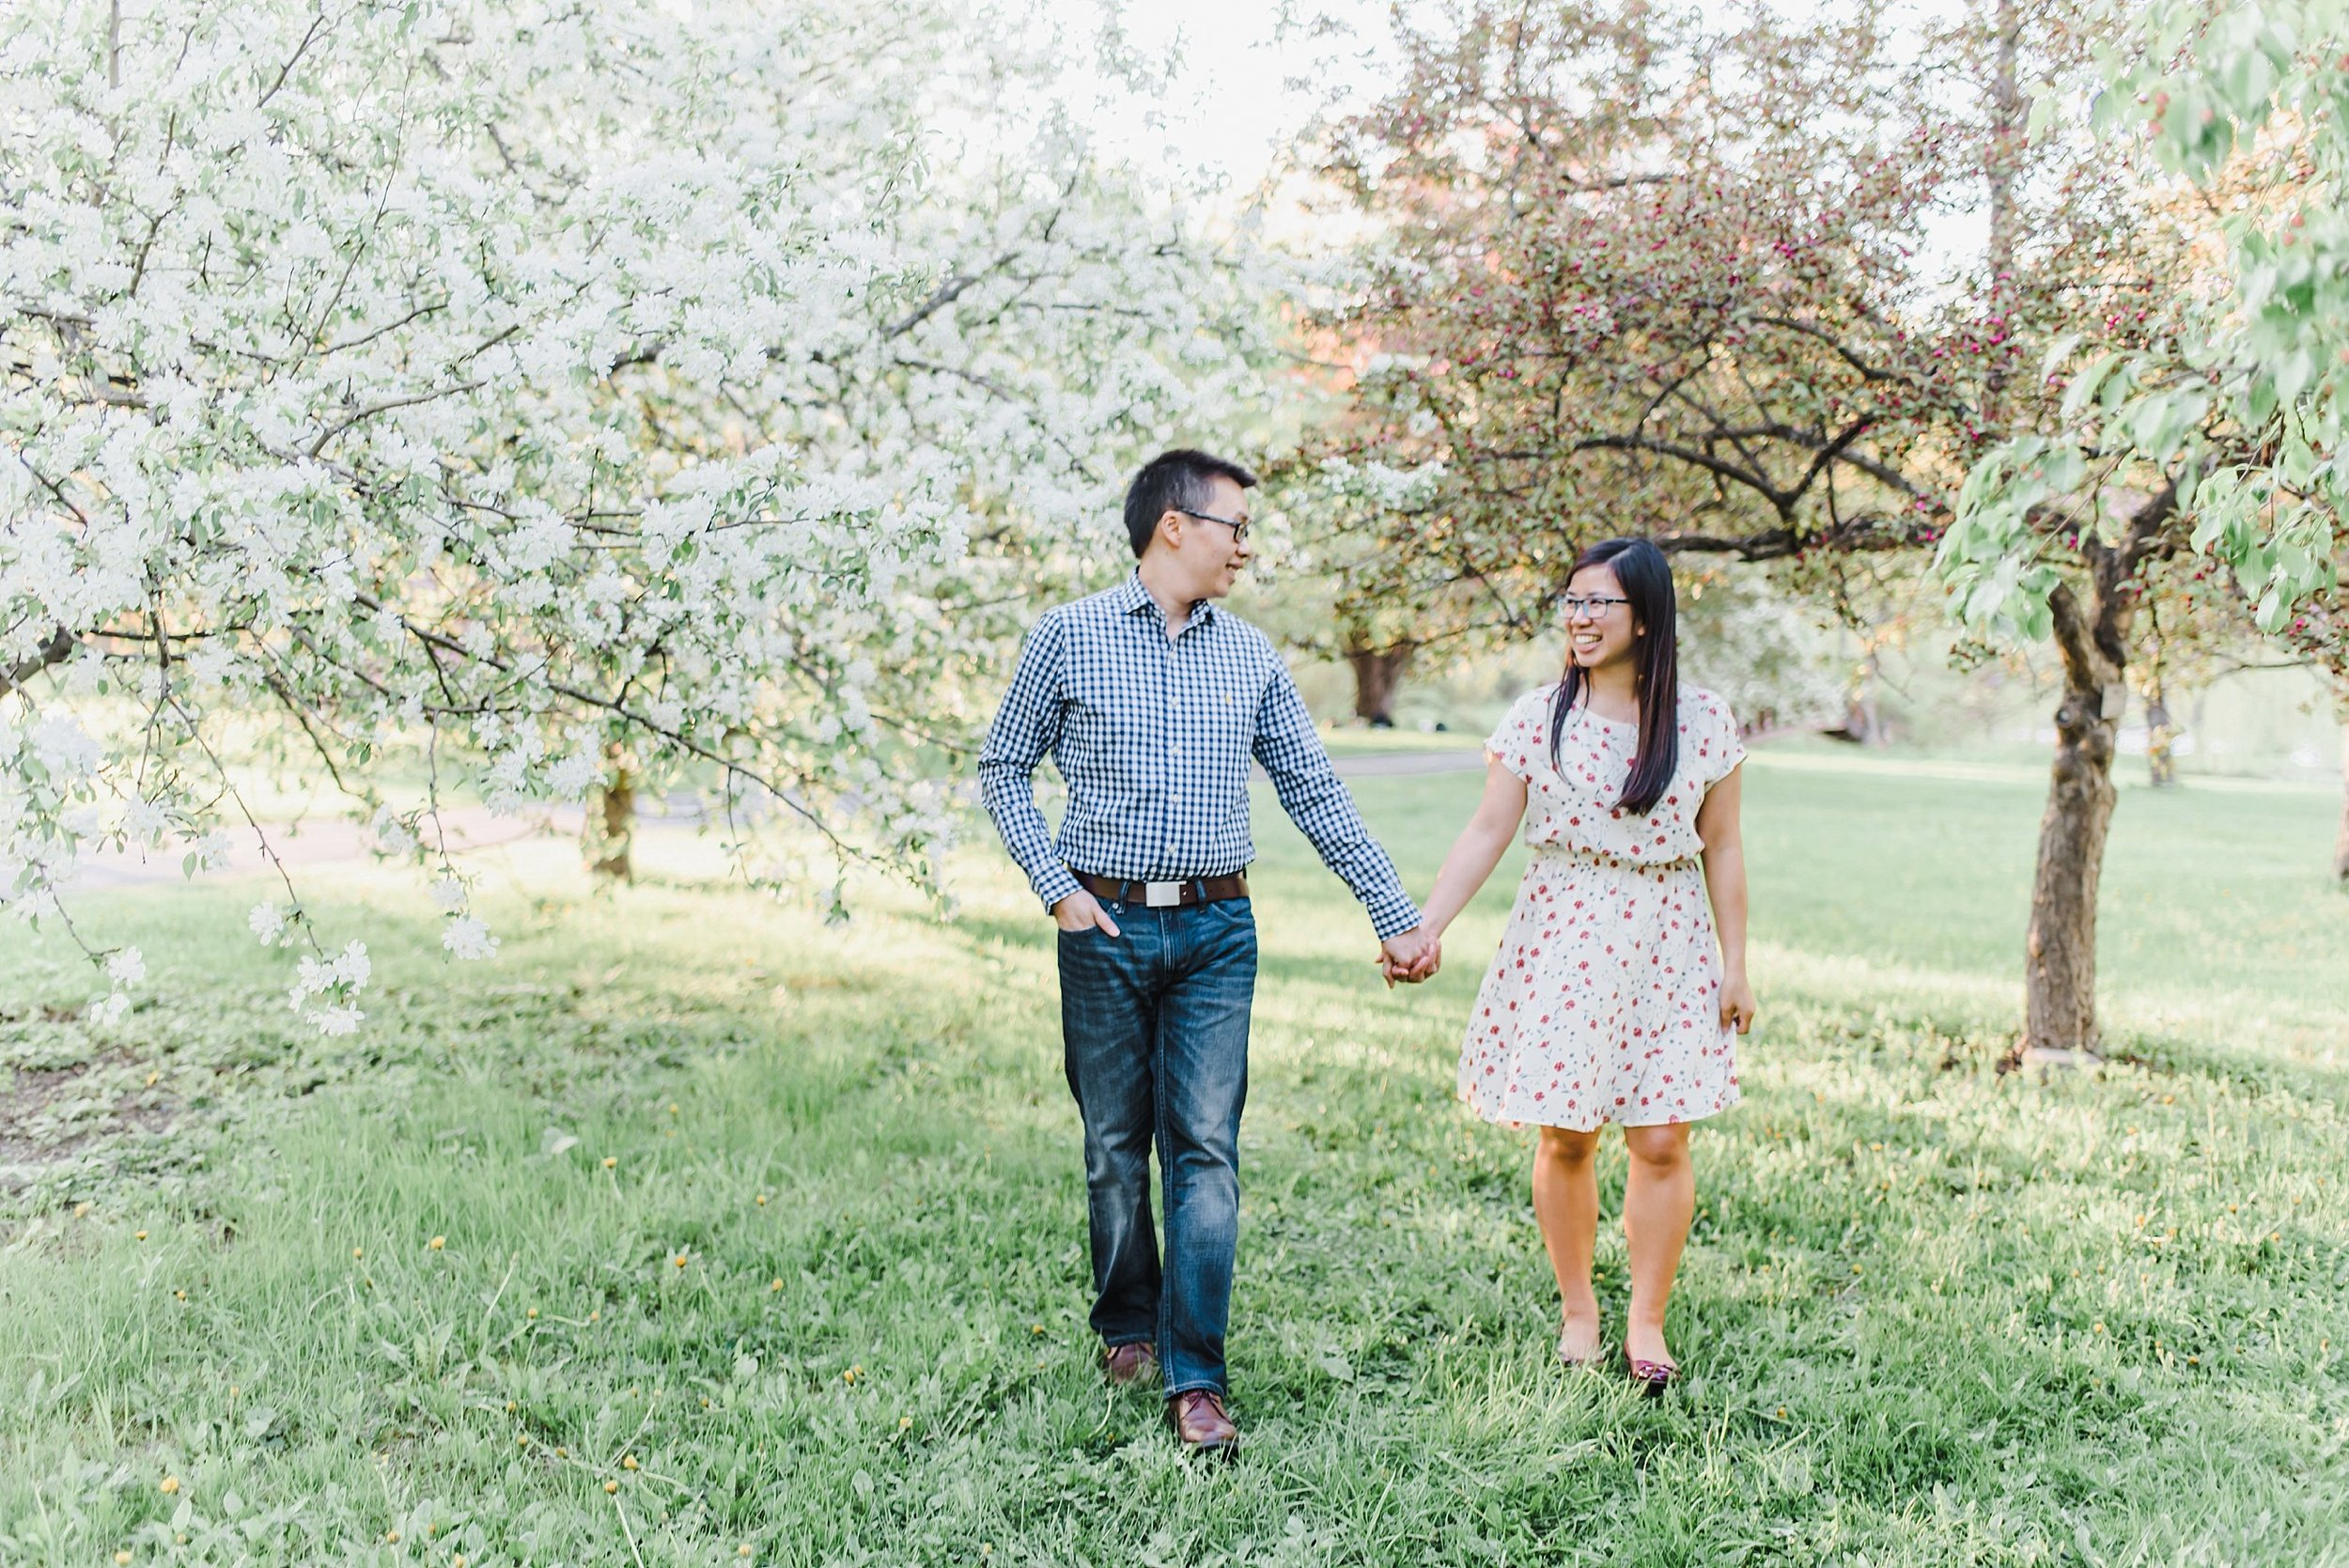 light airy indie fine art ottawa wedding photographer | Ali and Batoul Photography_0012.jpg